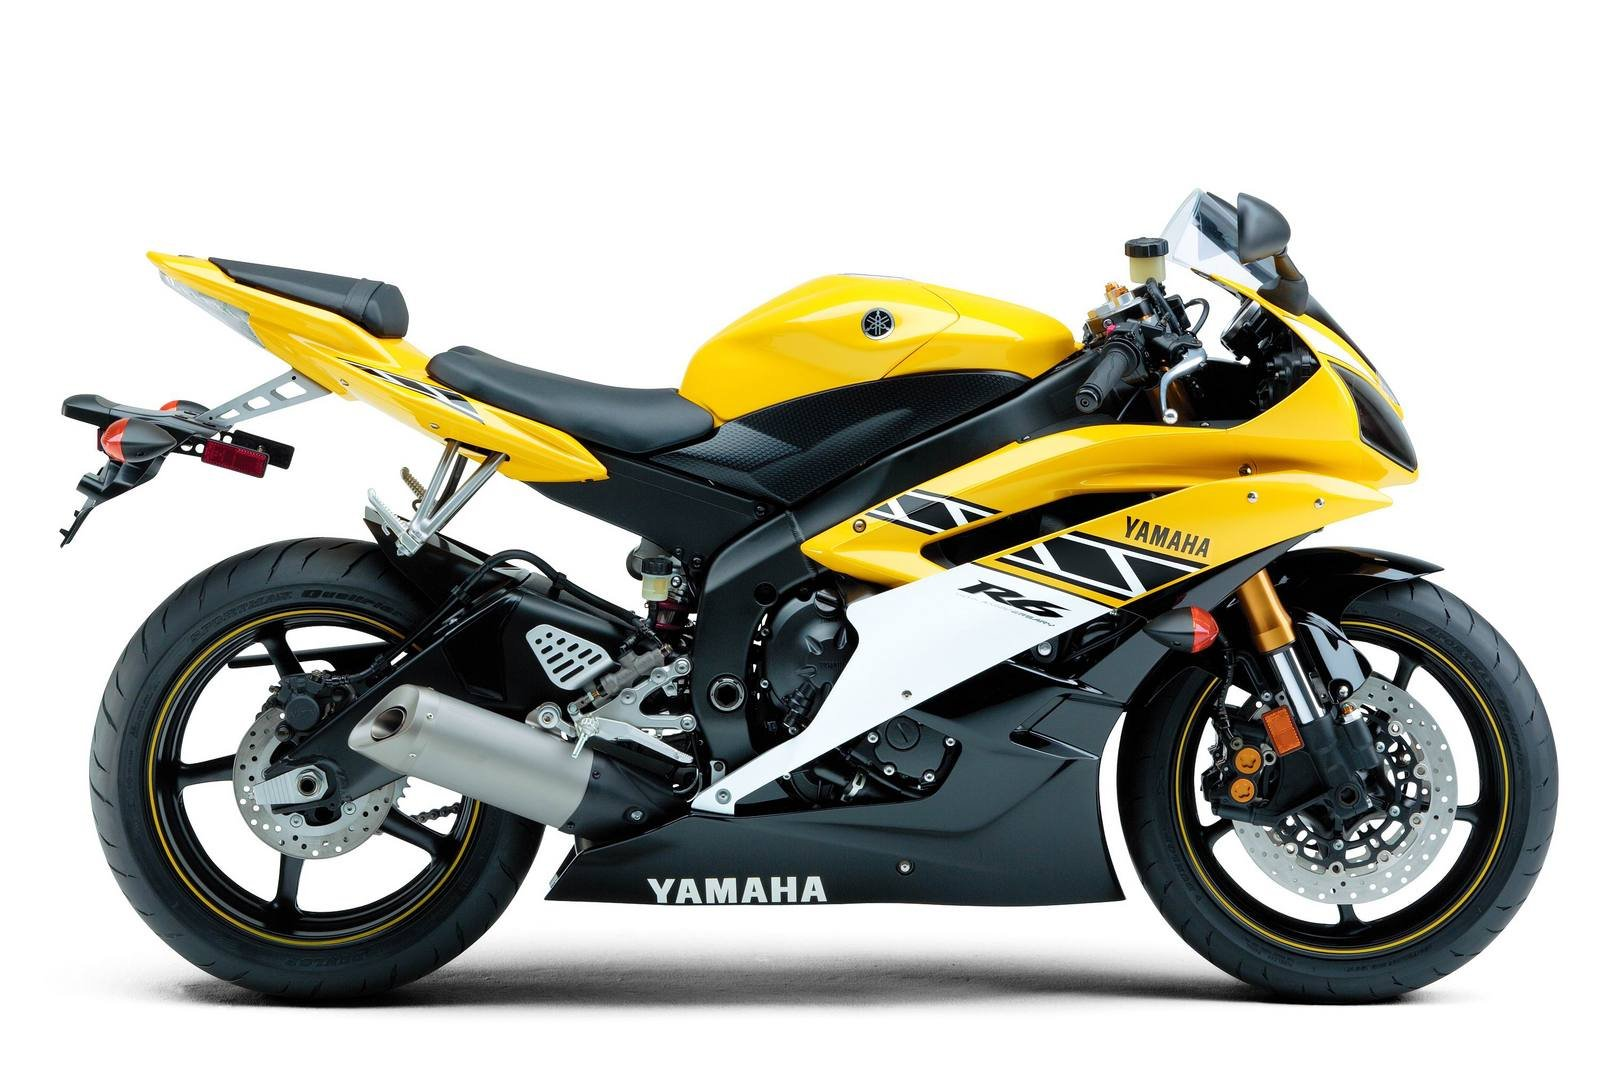 2006 yamaha yzf r6 picture 45404 motorcycle review for 2006 yamaha yzf r6